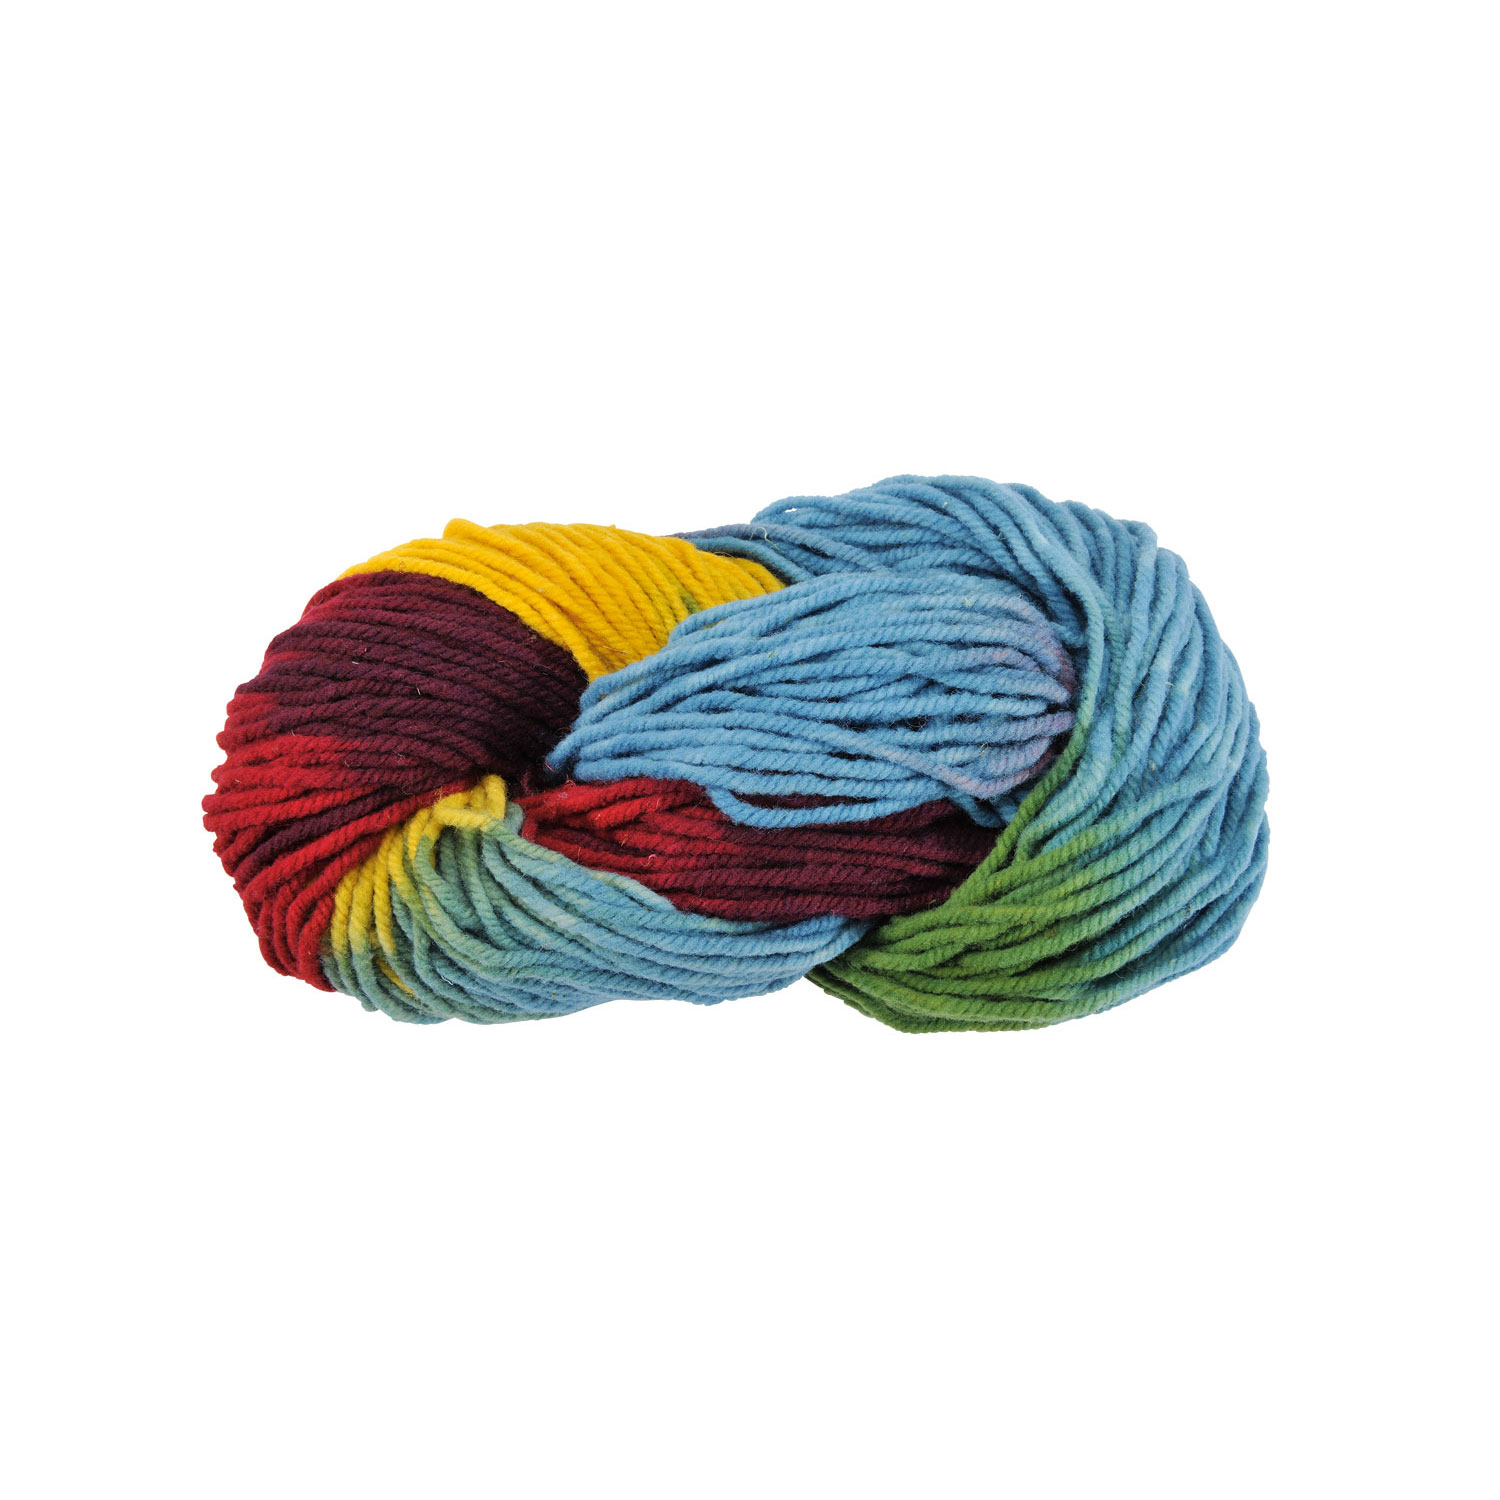 Filges Multicoloured Plant-dyed Wool for Knitting Needle size 5